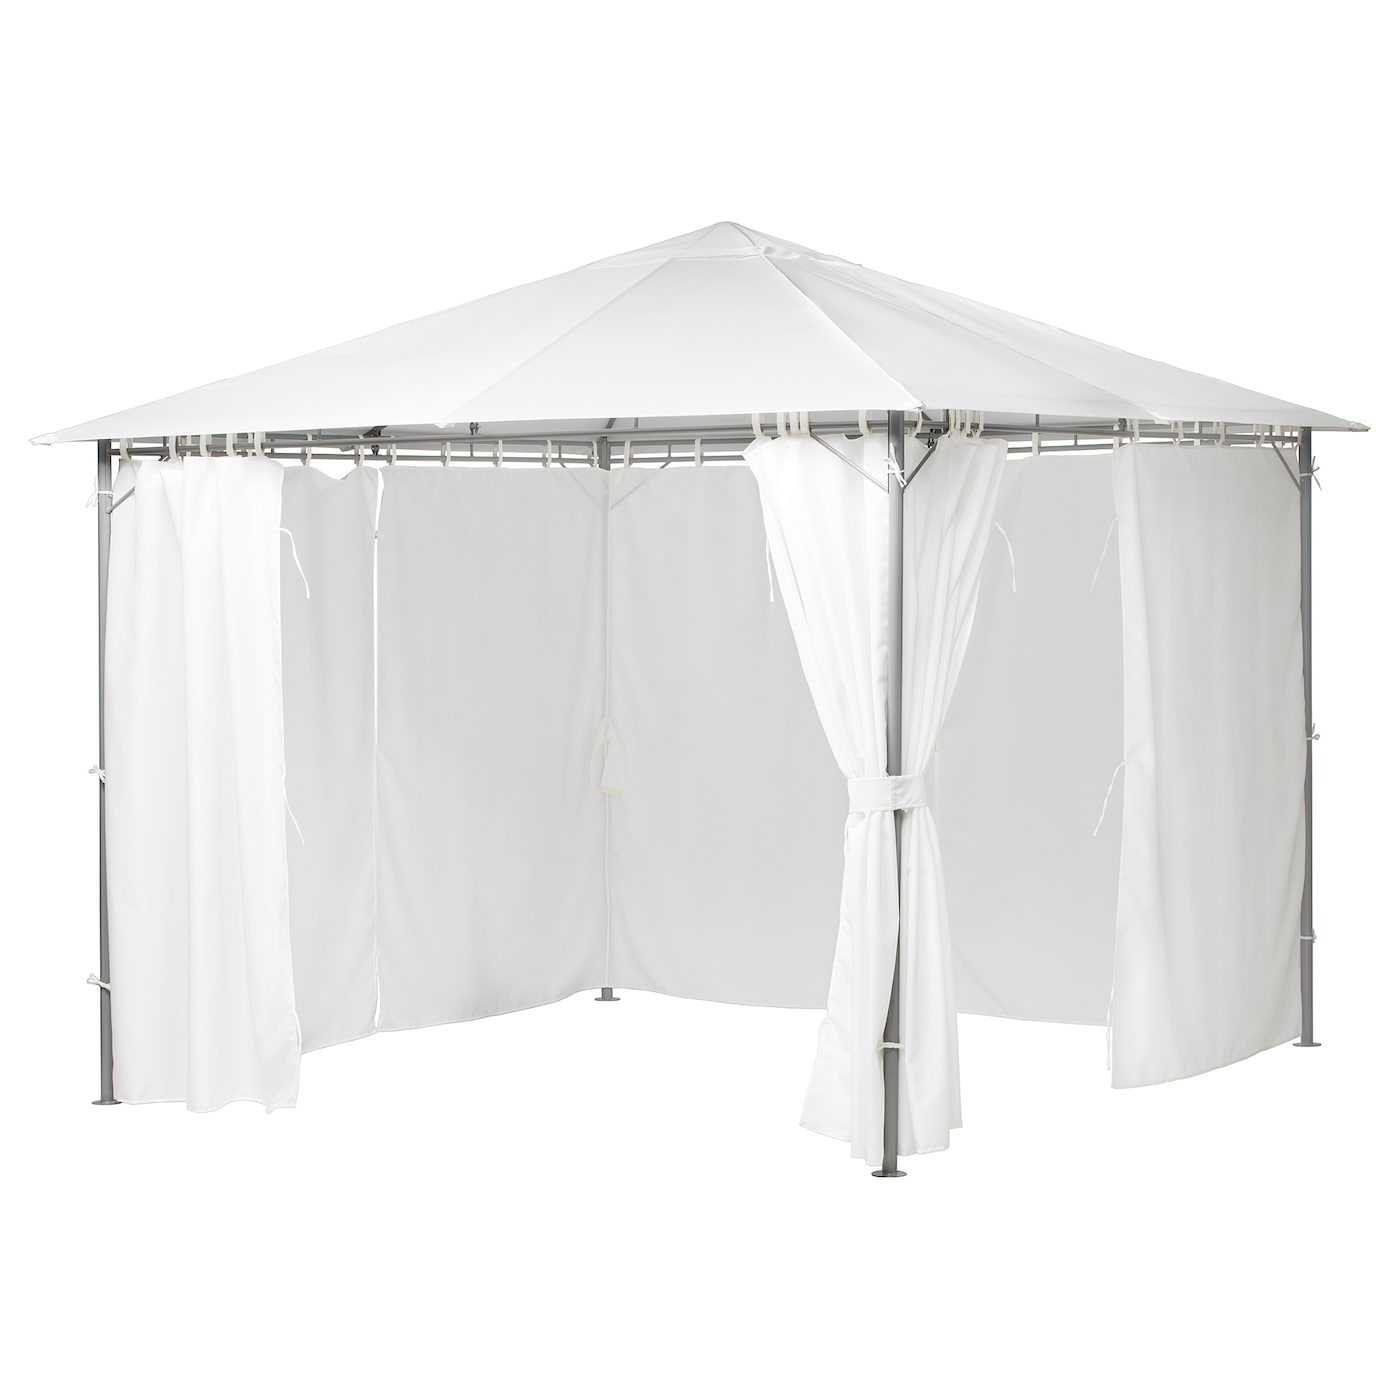 IKEA KARLSÖ gazebo Curtains create the feeling of a separate room and increase privacy.